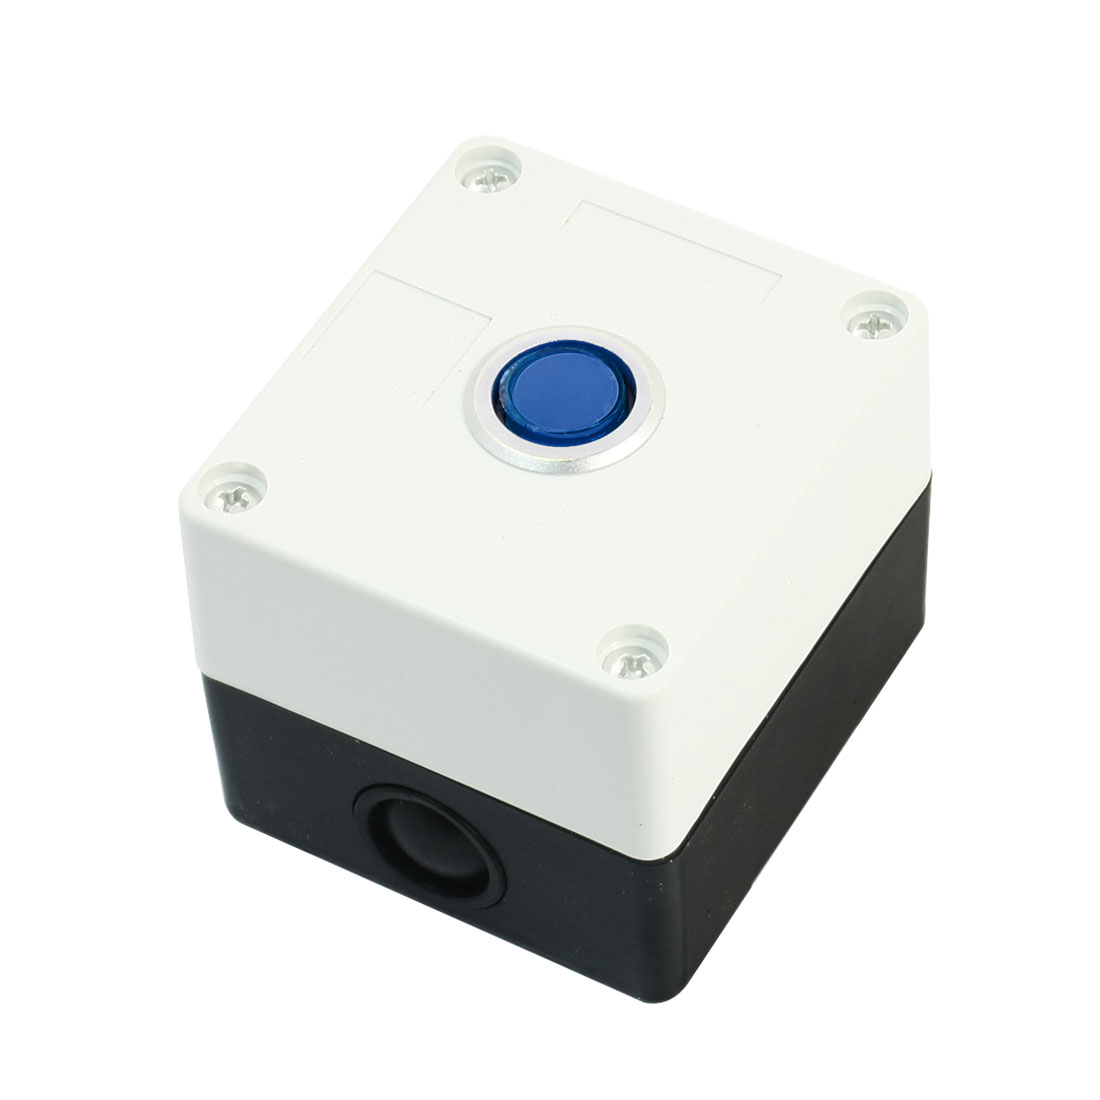 Blue Pilot Lamp SPDT 1NO 1NC 5Pin Locking Rectangle Plastic Push Button Station Switch Control Box AC220V 5A